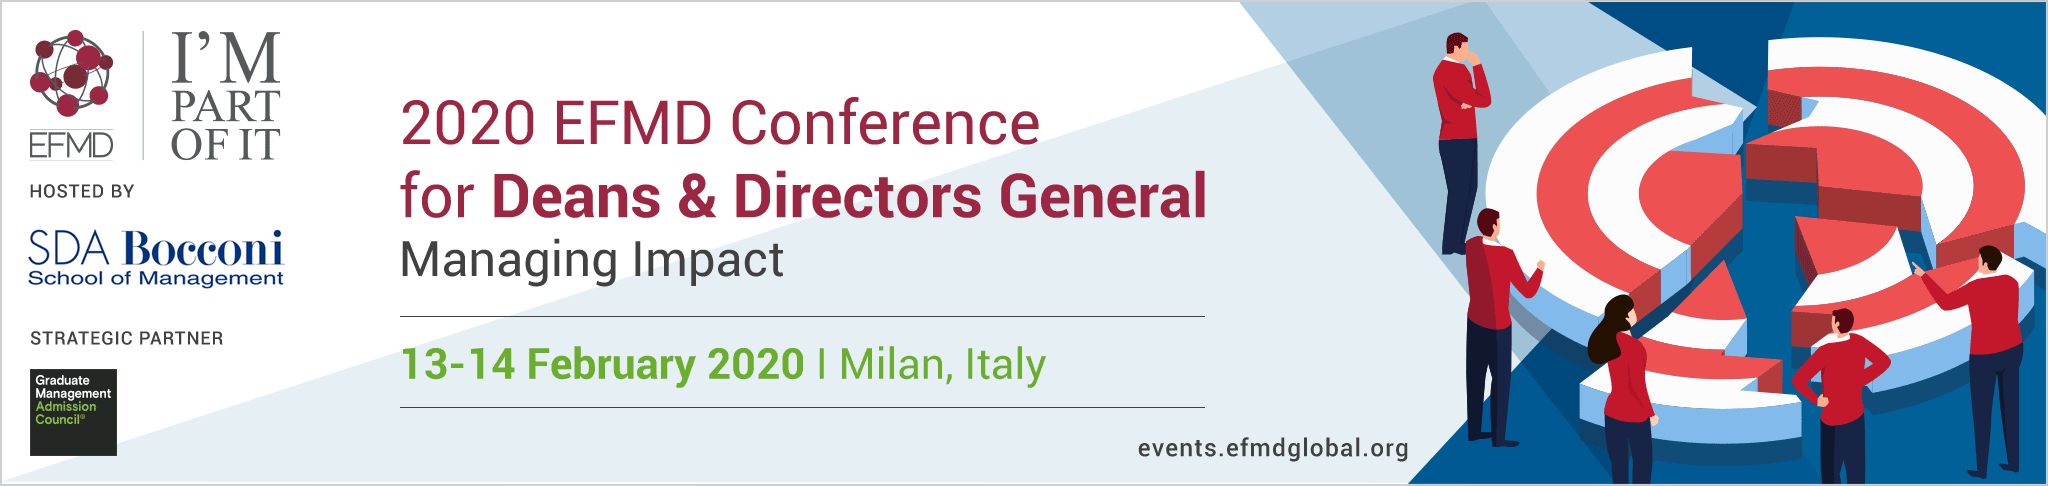 2020 EFMD Conference for Deans & Directors General - SDA Bocconi School of Management - Milan - Italy - Thursday 13  & Friday 14 February 2020